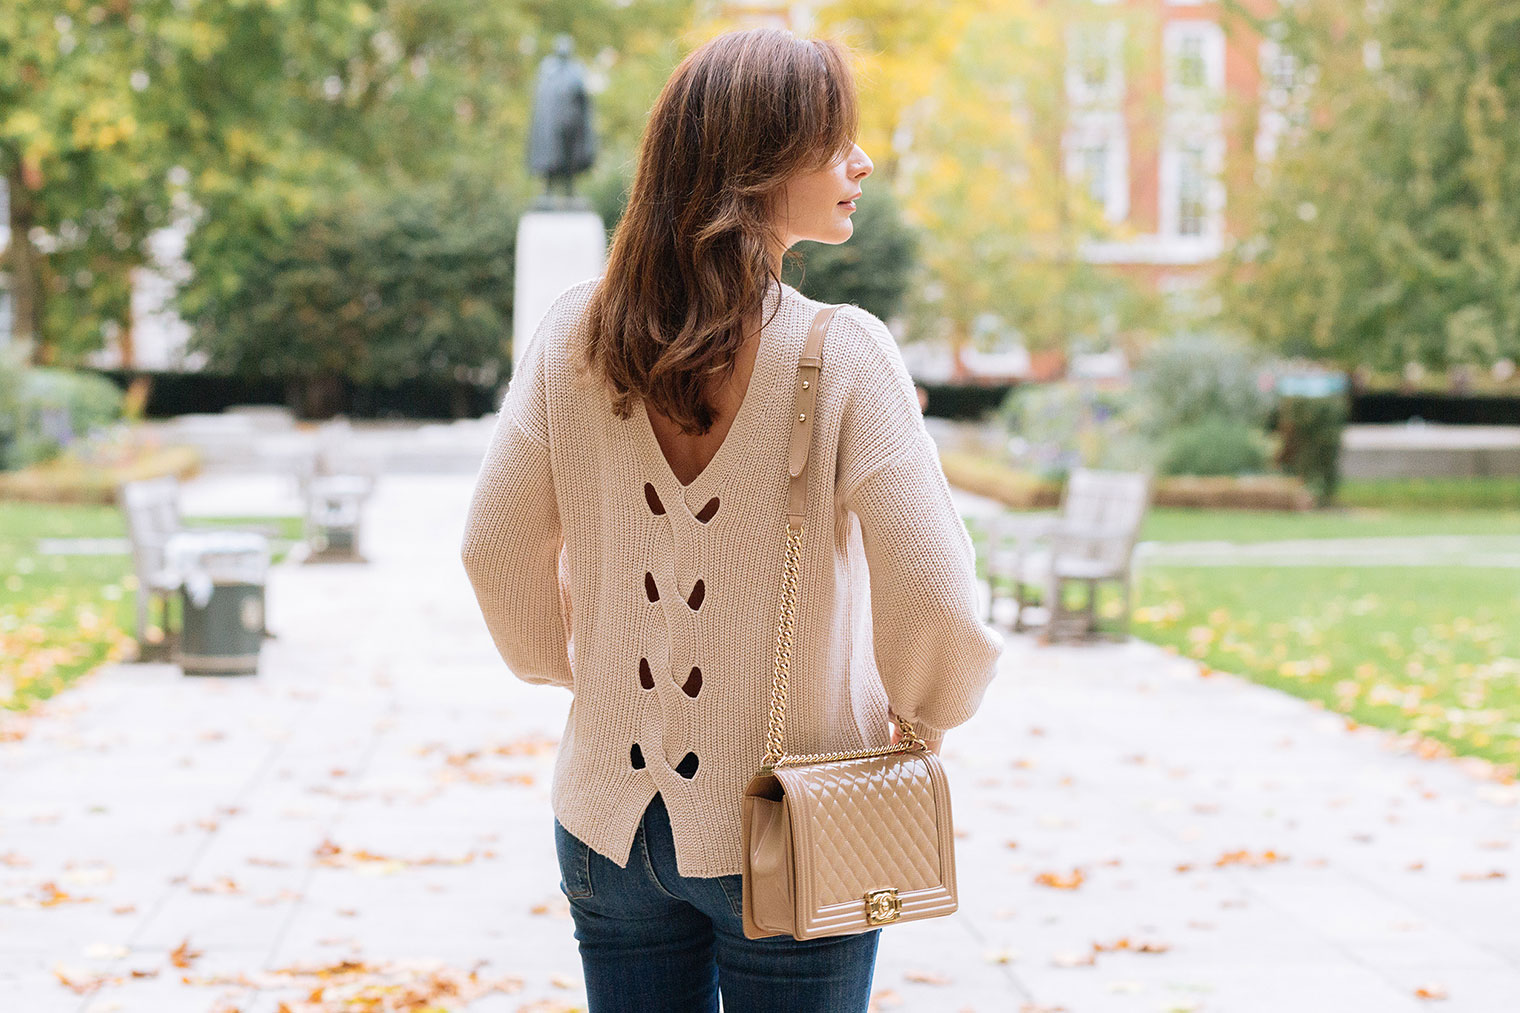 beige sweater with the detail on the back